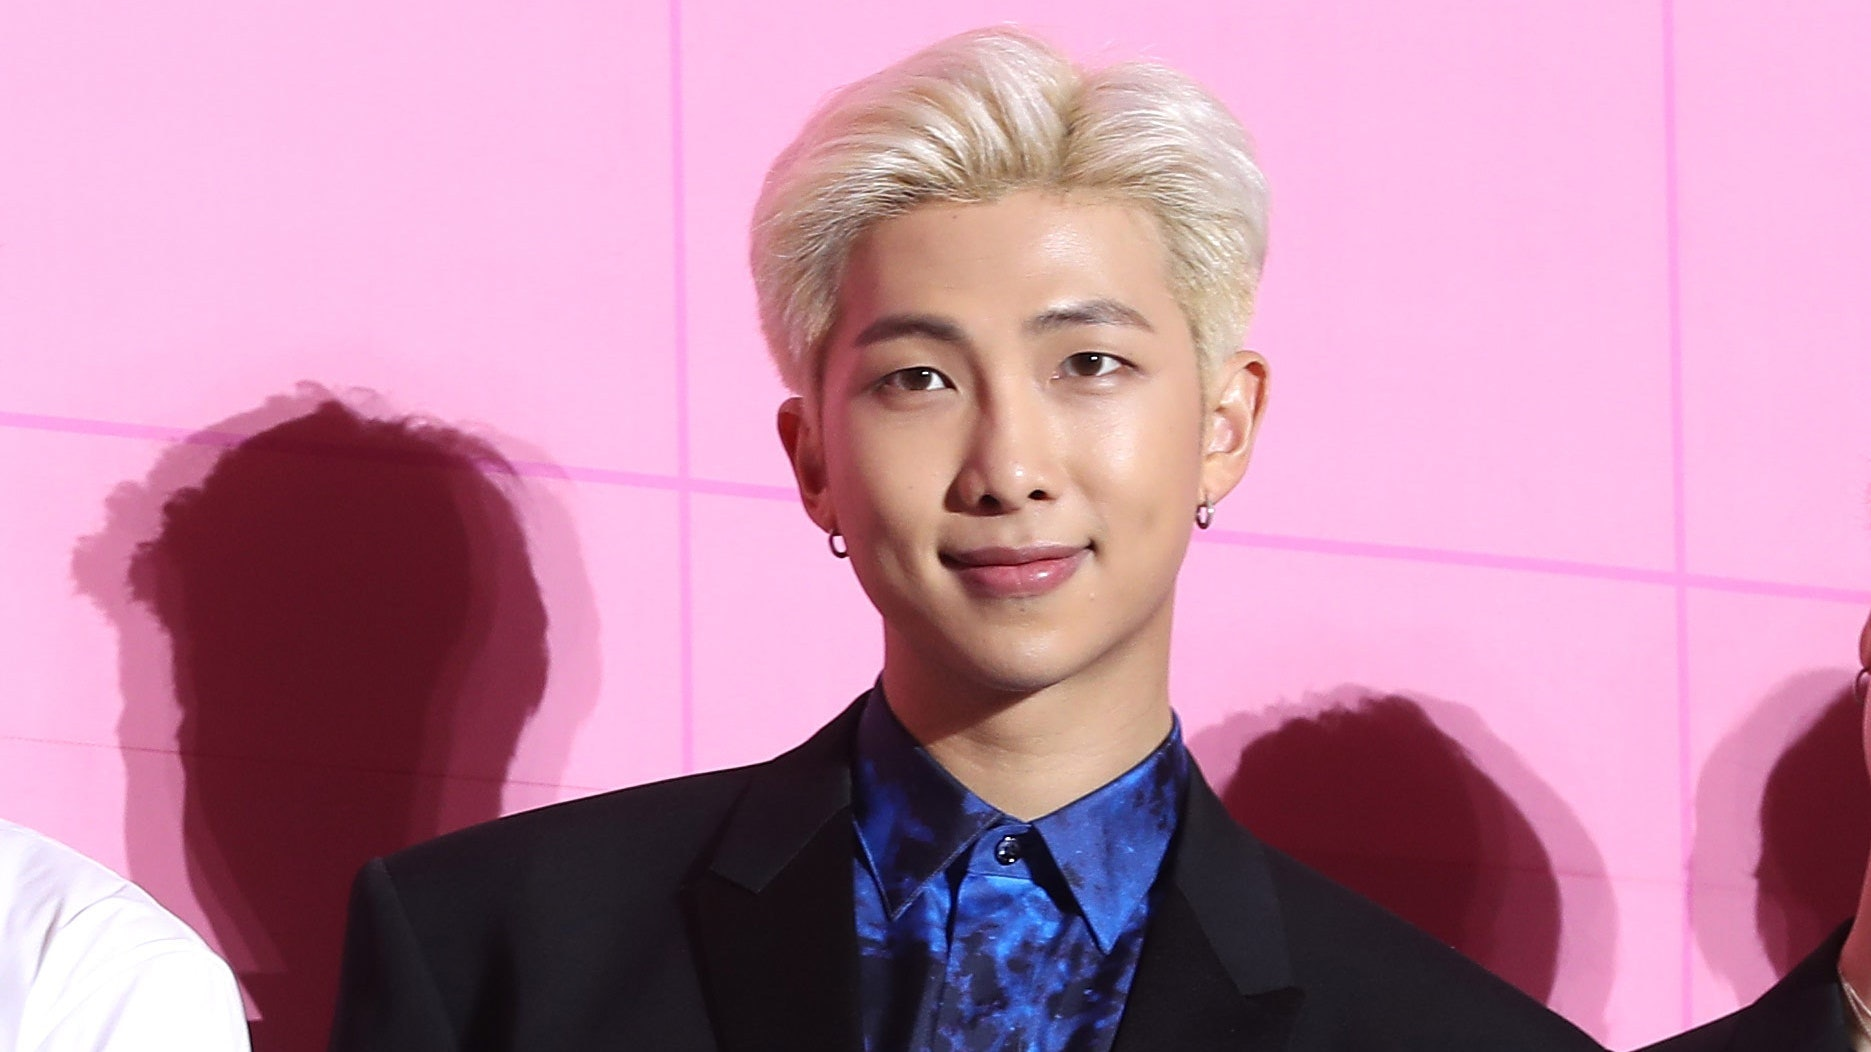 RM From BTS'